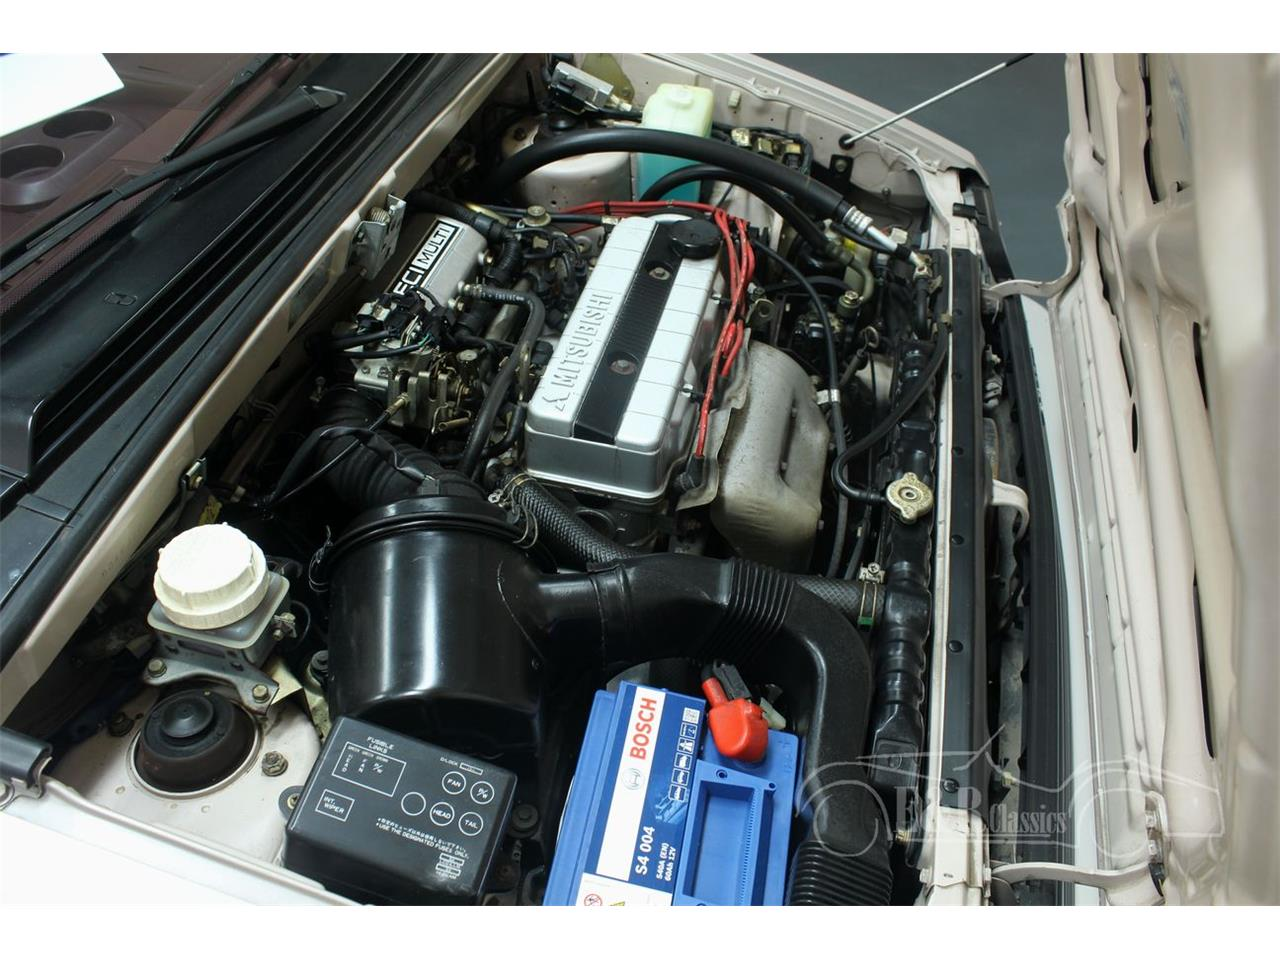 Large Picture of '87 Dodge Colt located in [nl] Pays-Bas - $16,900.00 Offered by E & R Classics - PVV4